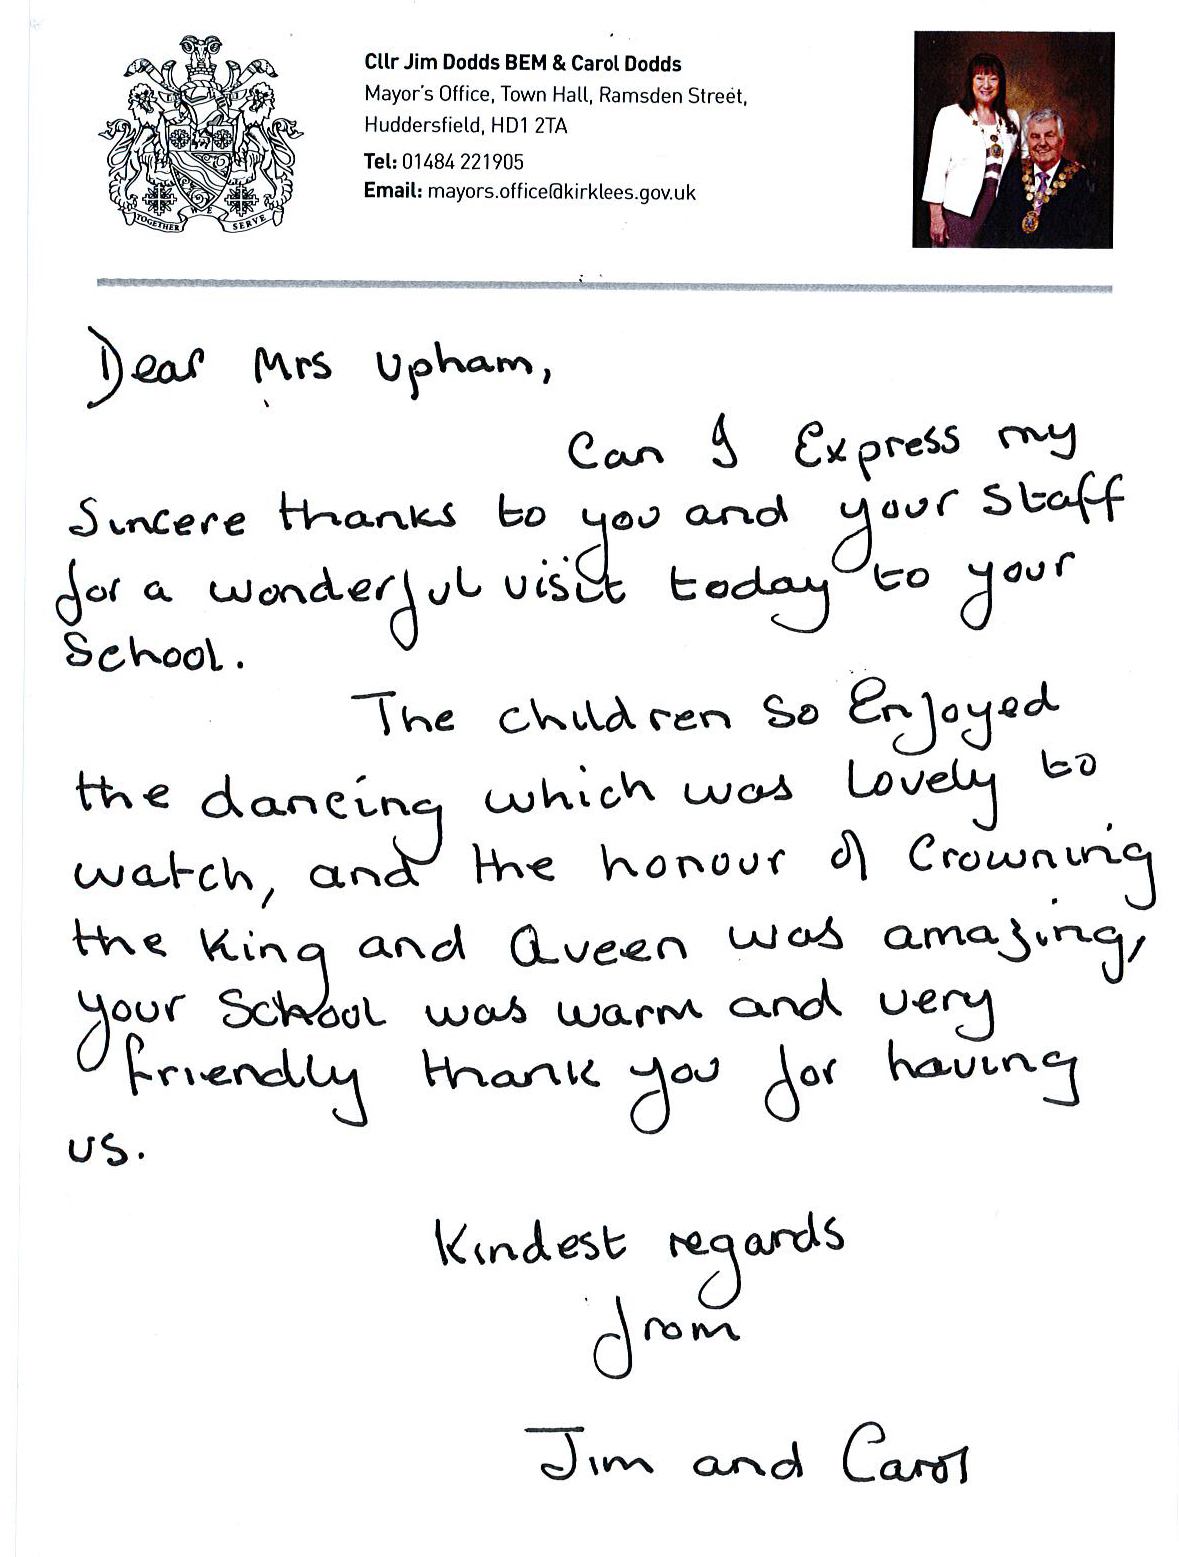 Letter of thanks from the Mayor of Kirklees